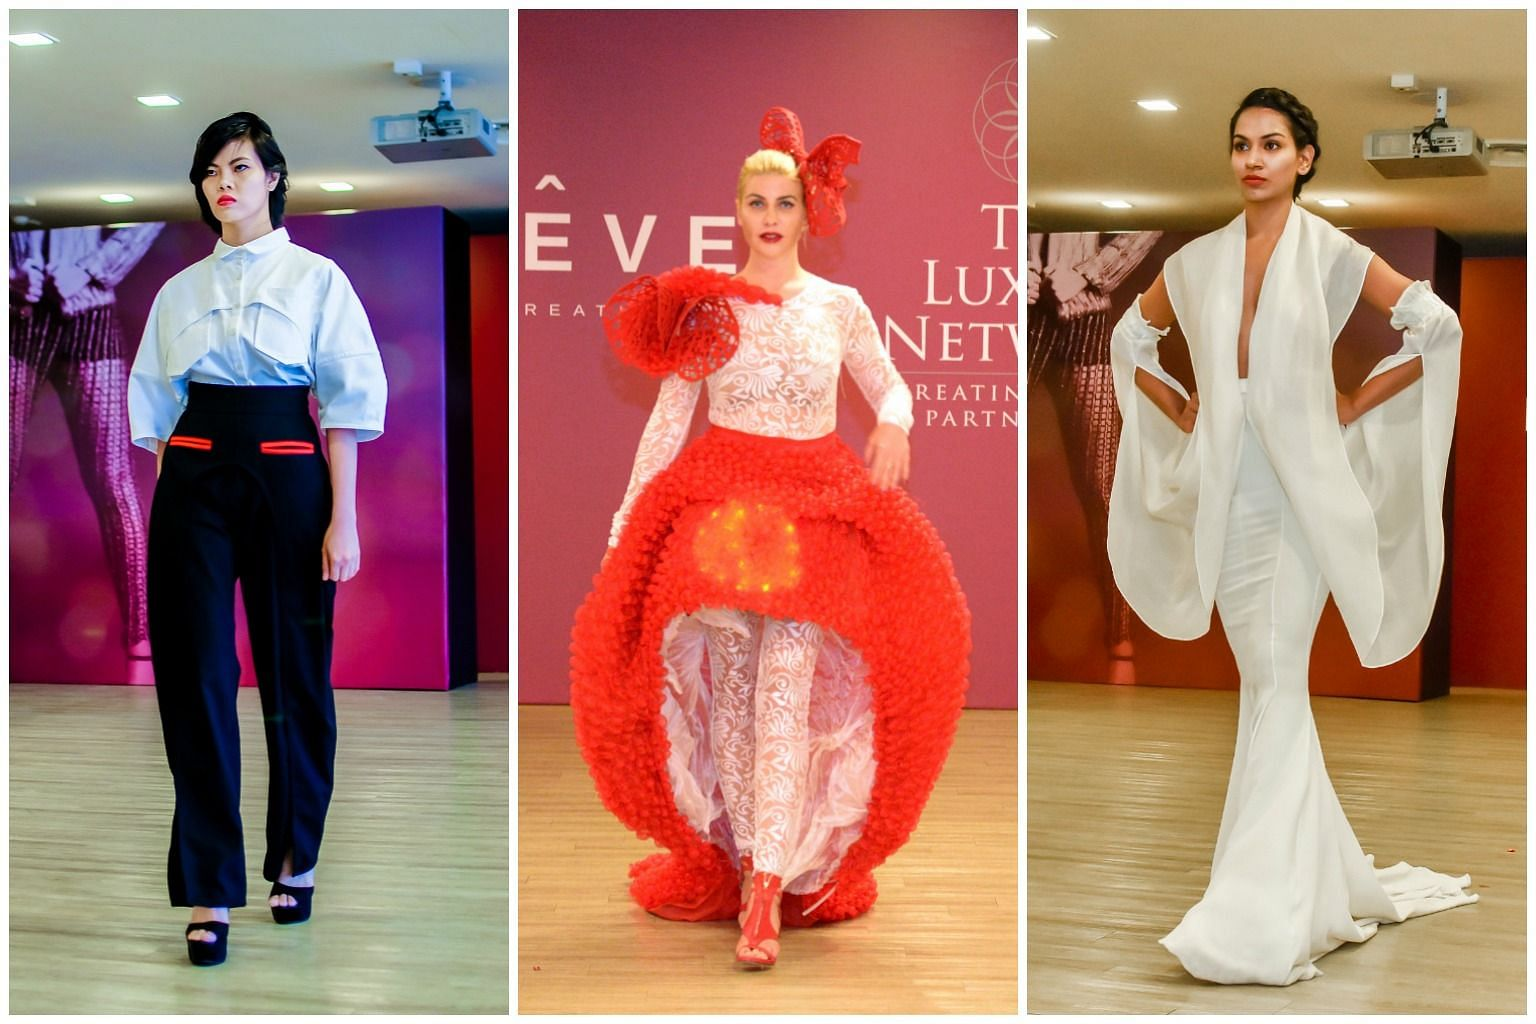 Outfits from designer Lena Trotsko's Maleficent collection (left) at the event held at the Singapore Turf Club. (From left) On the catwalk: Creations from Esther Choy's I Am At Heart A Gentleman collection; Galina Mihaleva's Avant-Garde collection; a